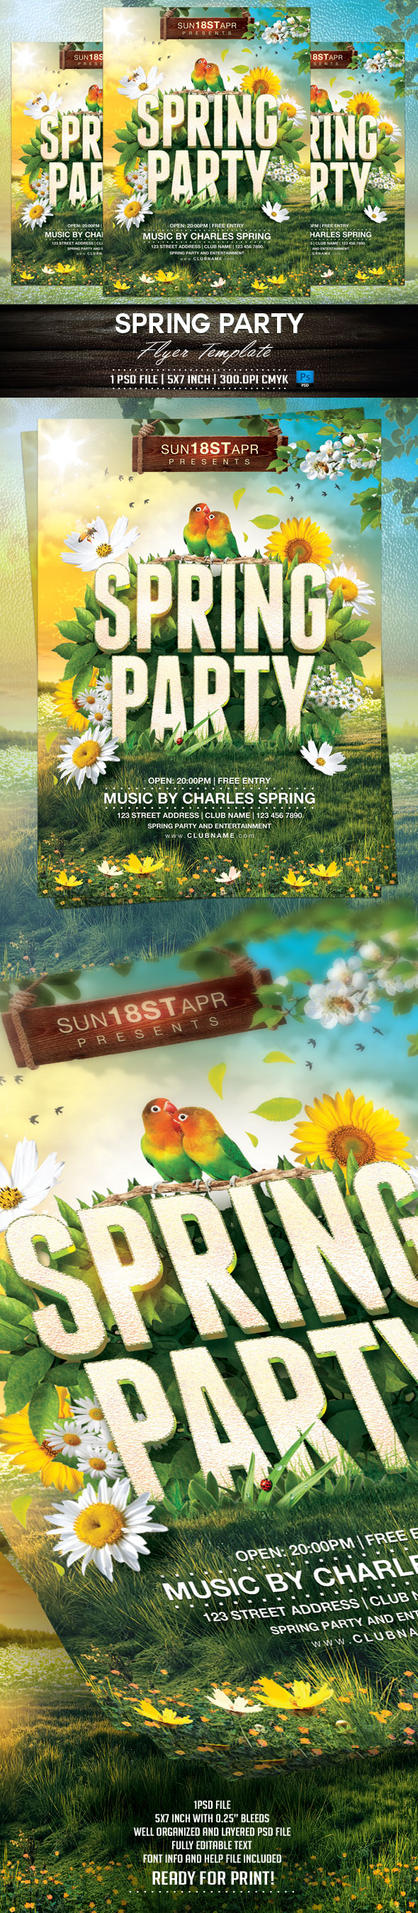 Spring Party Flyer Template by BriellDesign